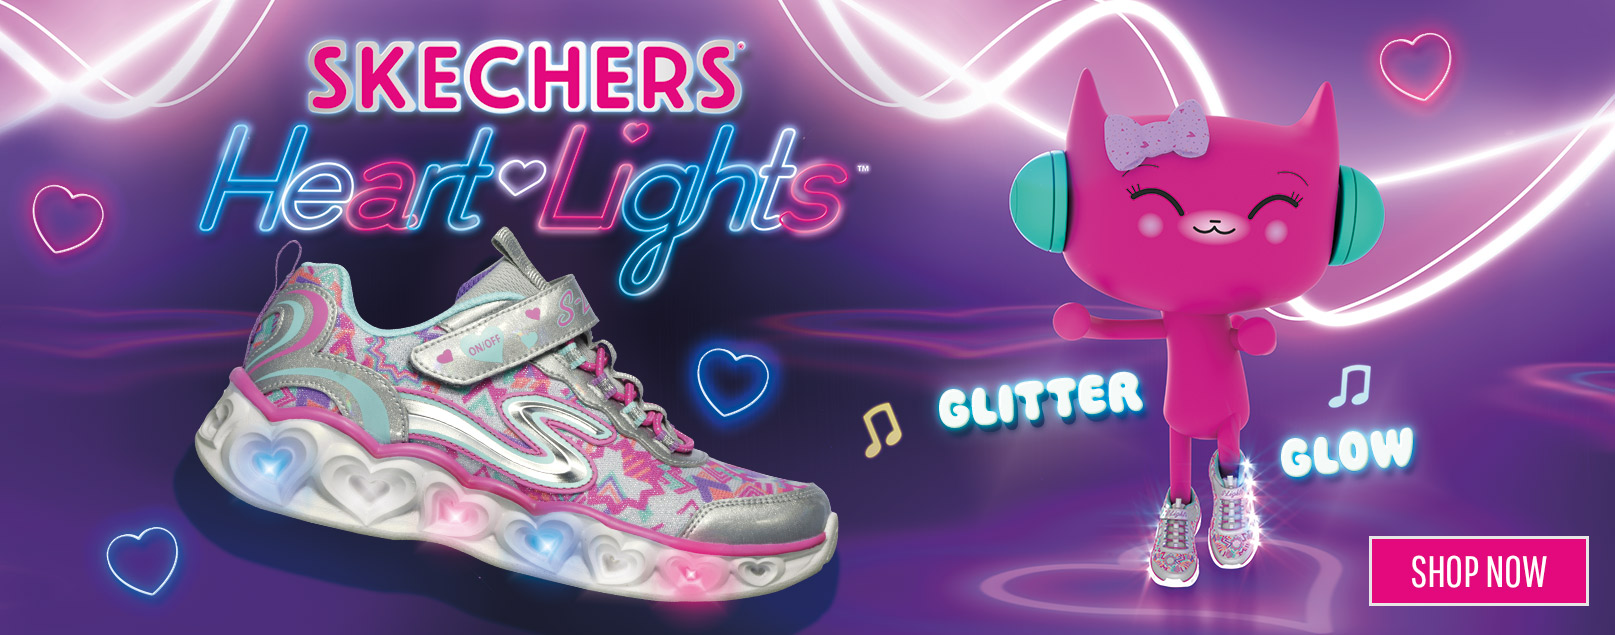 Light-up fun she's sure to love comes in the Heart Lights by SKECHERS.  Sporty sneakers with light up hearts for adorable style that's easy to wear.